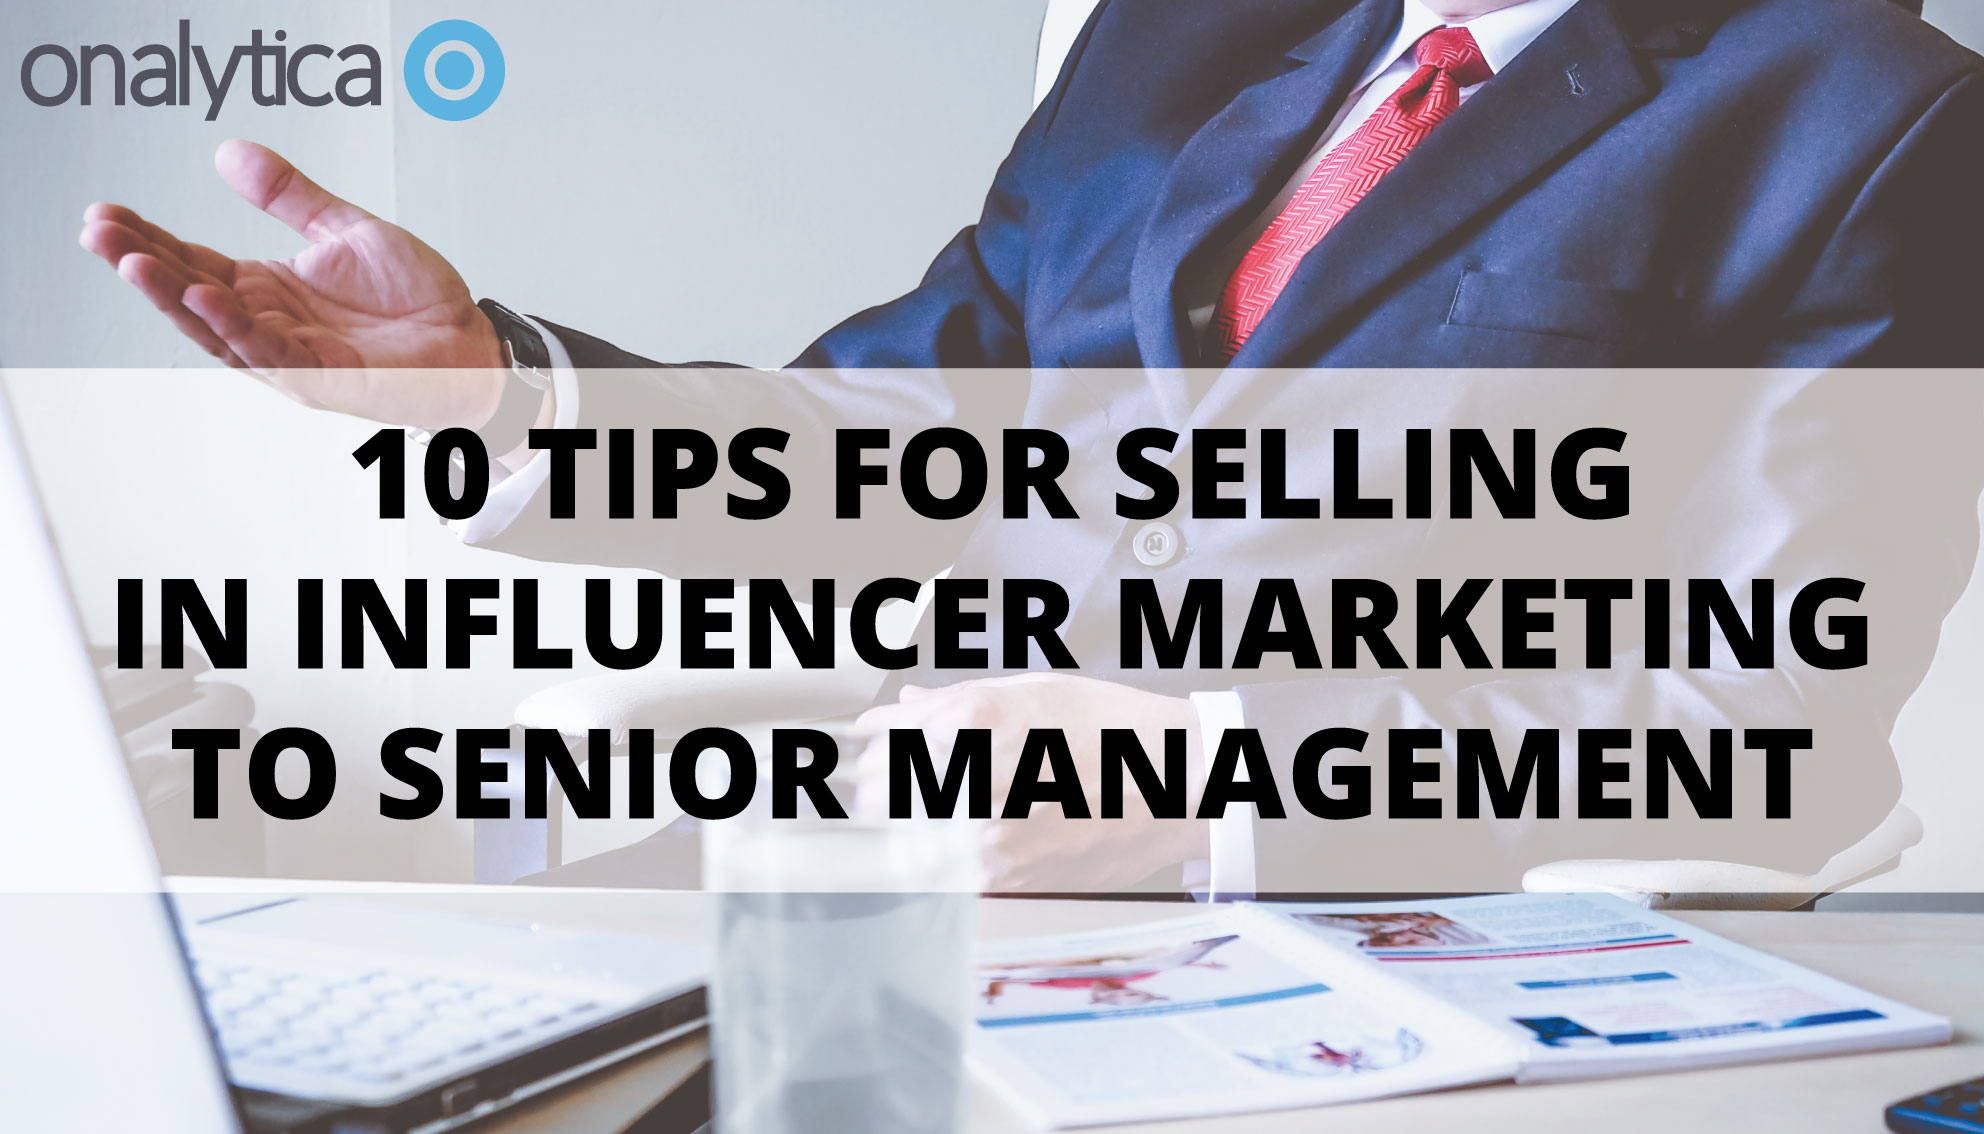 10 Tips for Selling in Influencer Marketing to Senior Management